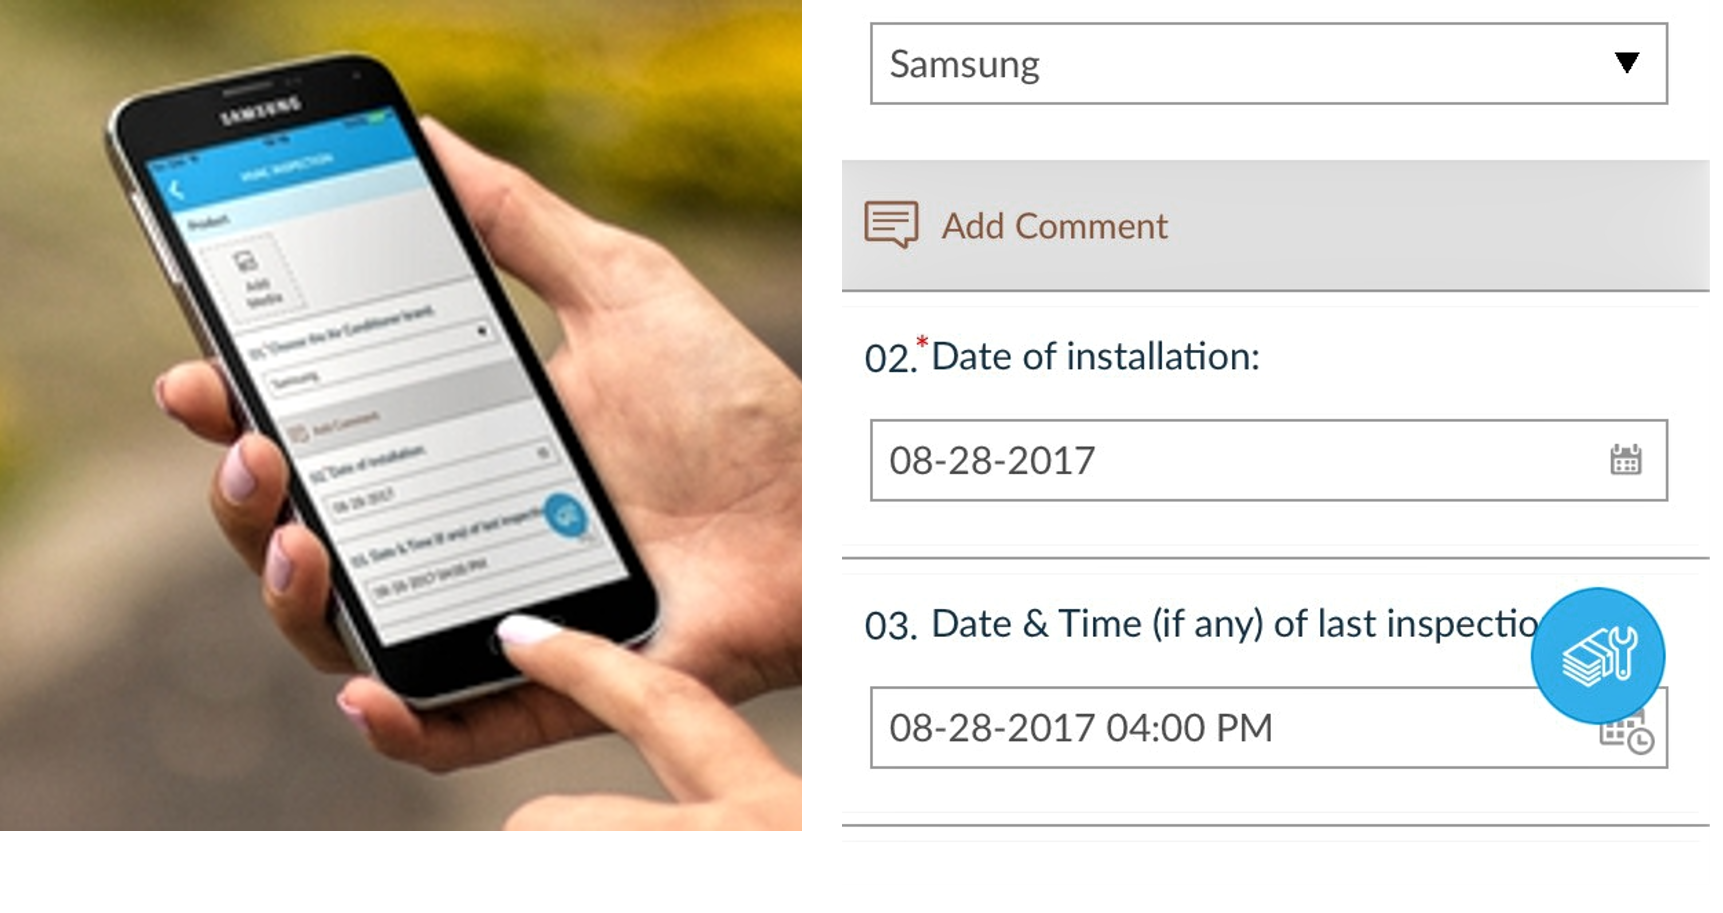 Date and time question type on mobile